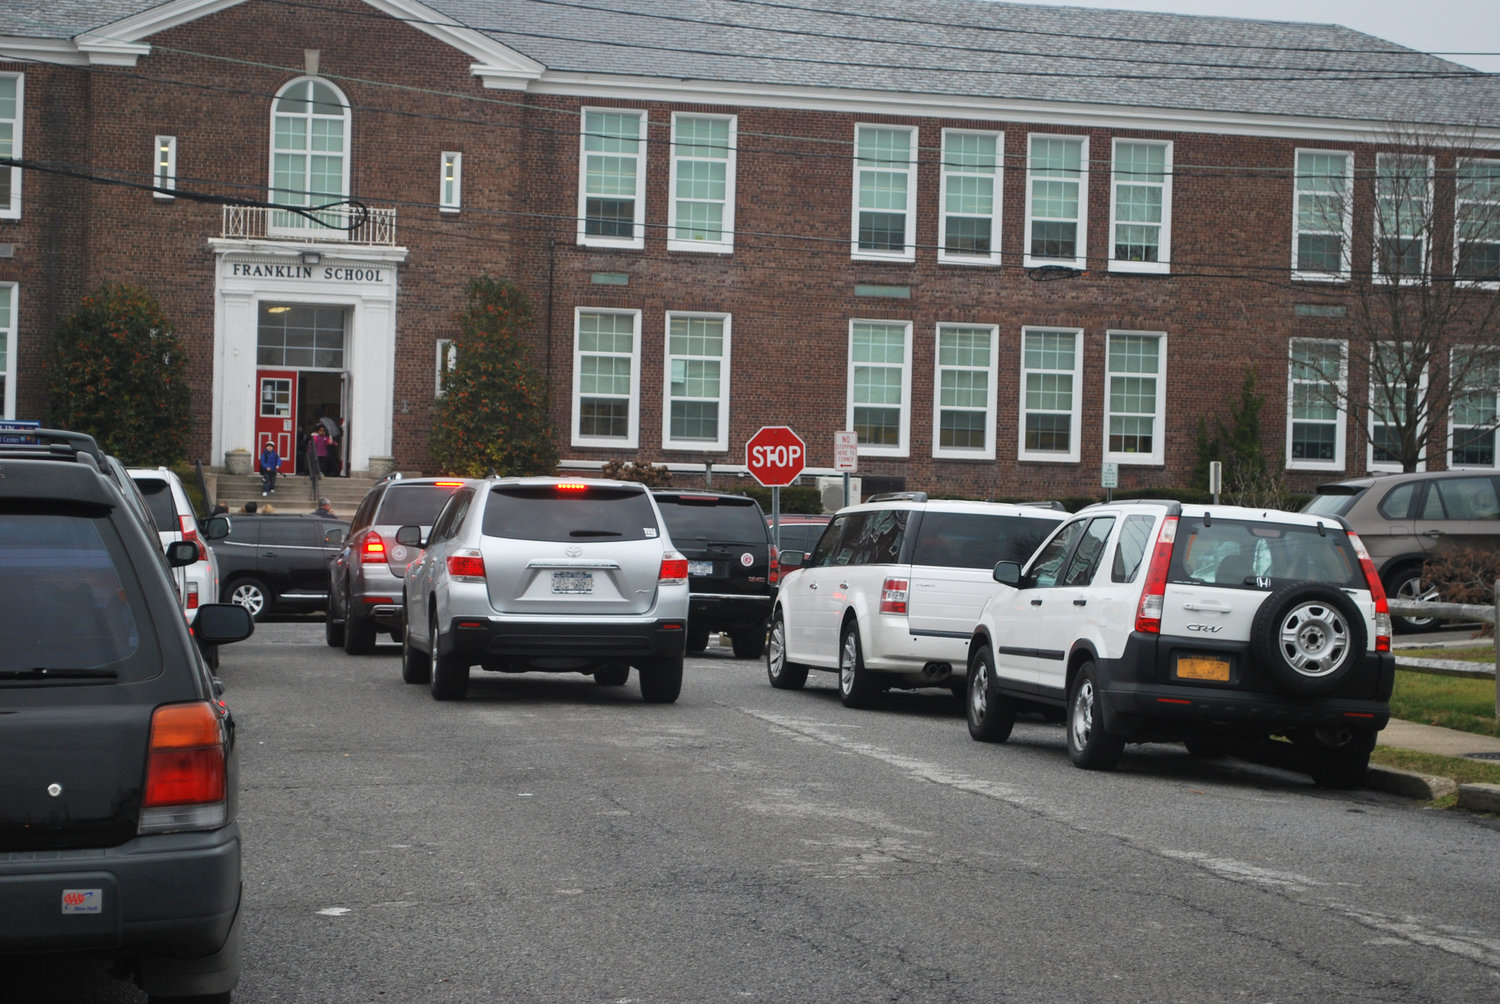 Hewlett resident Carmen Durdaller called traffic volume at pickup and dismissal at the Franklin Early Childhood Center crazy. The photo from December 2013 shows nothing has changed in nearly six years.